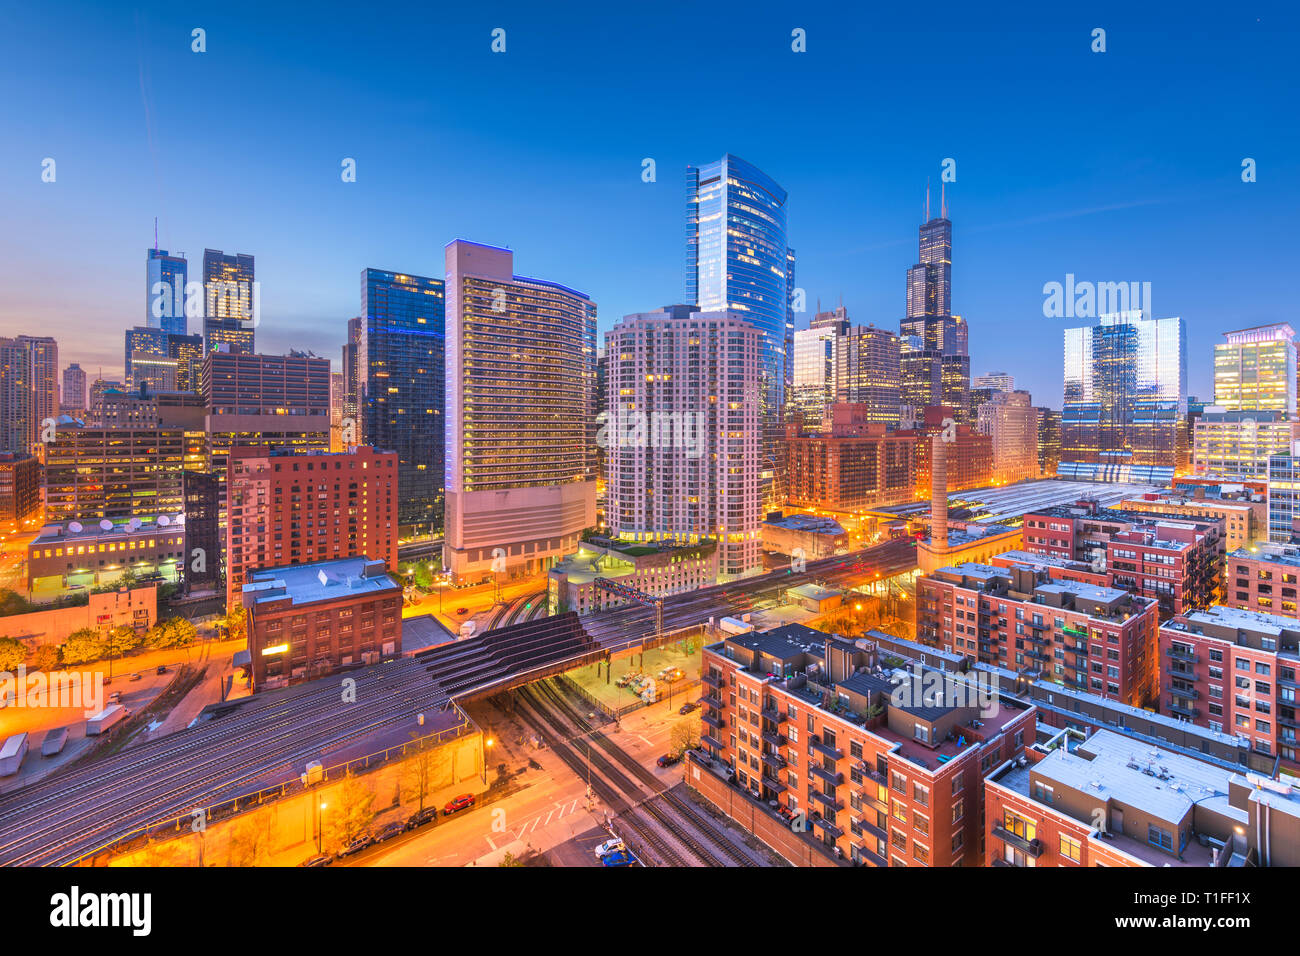 Chicago, Illinois, USA downtown cityscape at dusk. - Stock Image